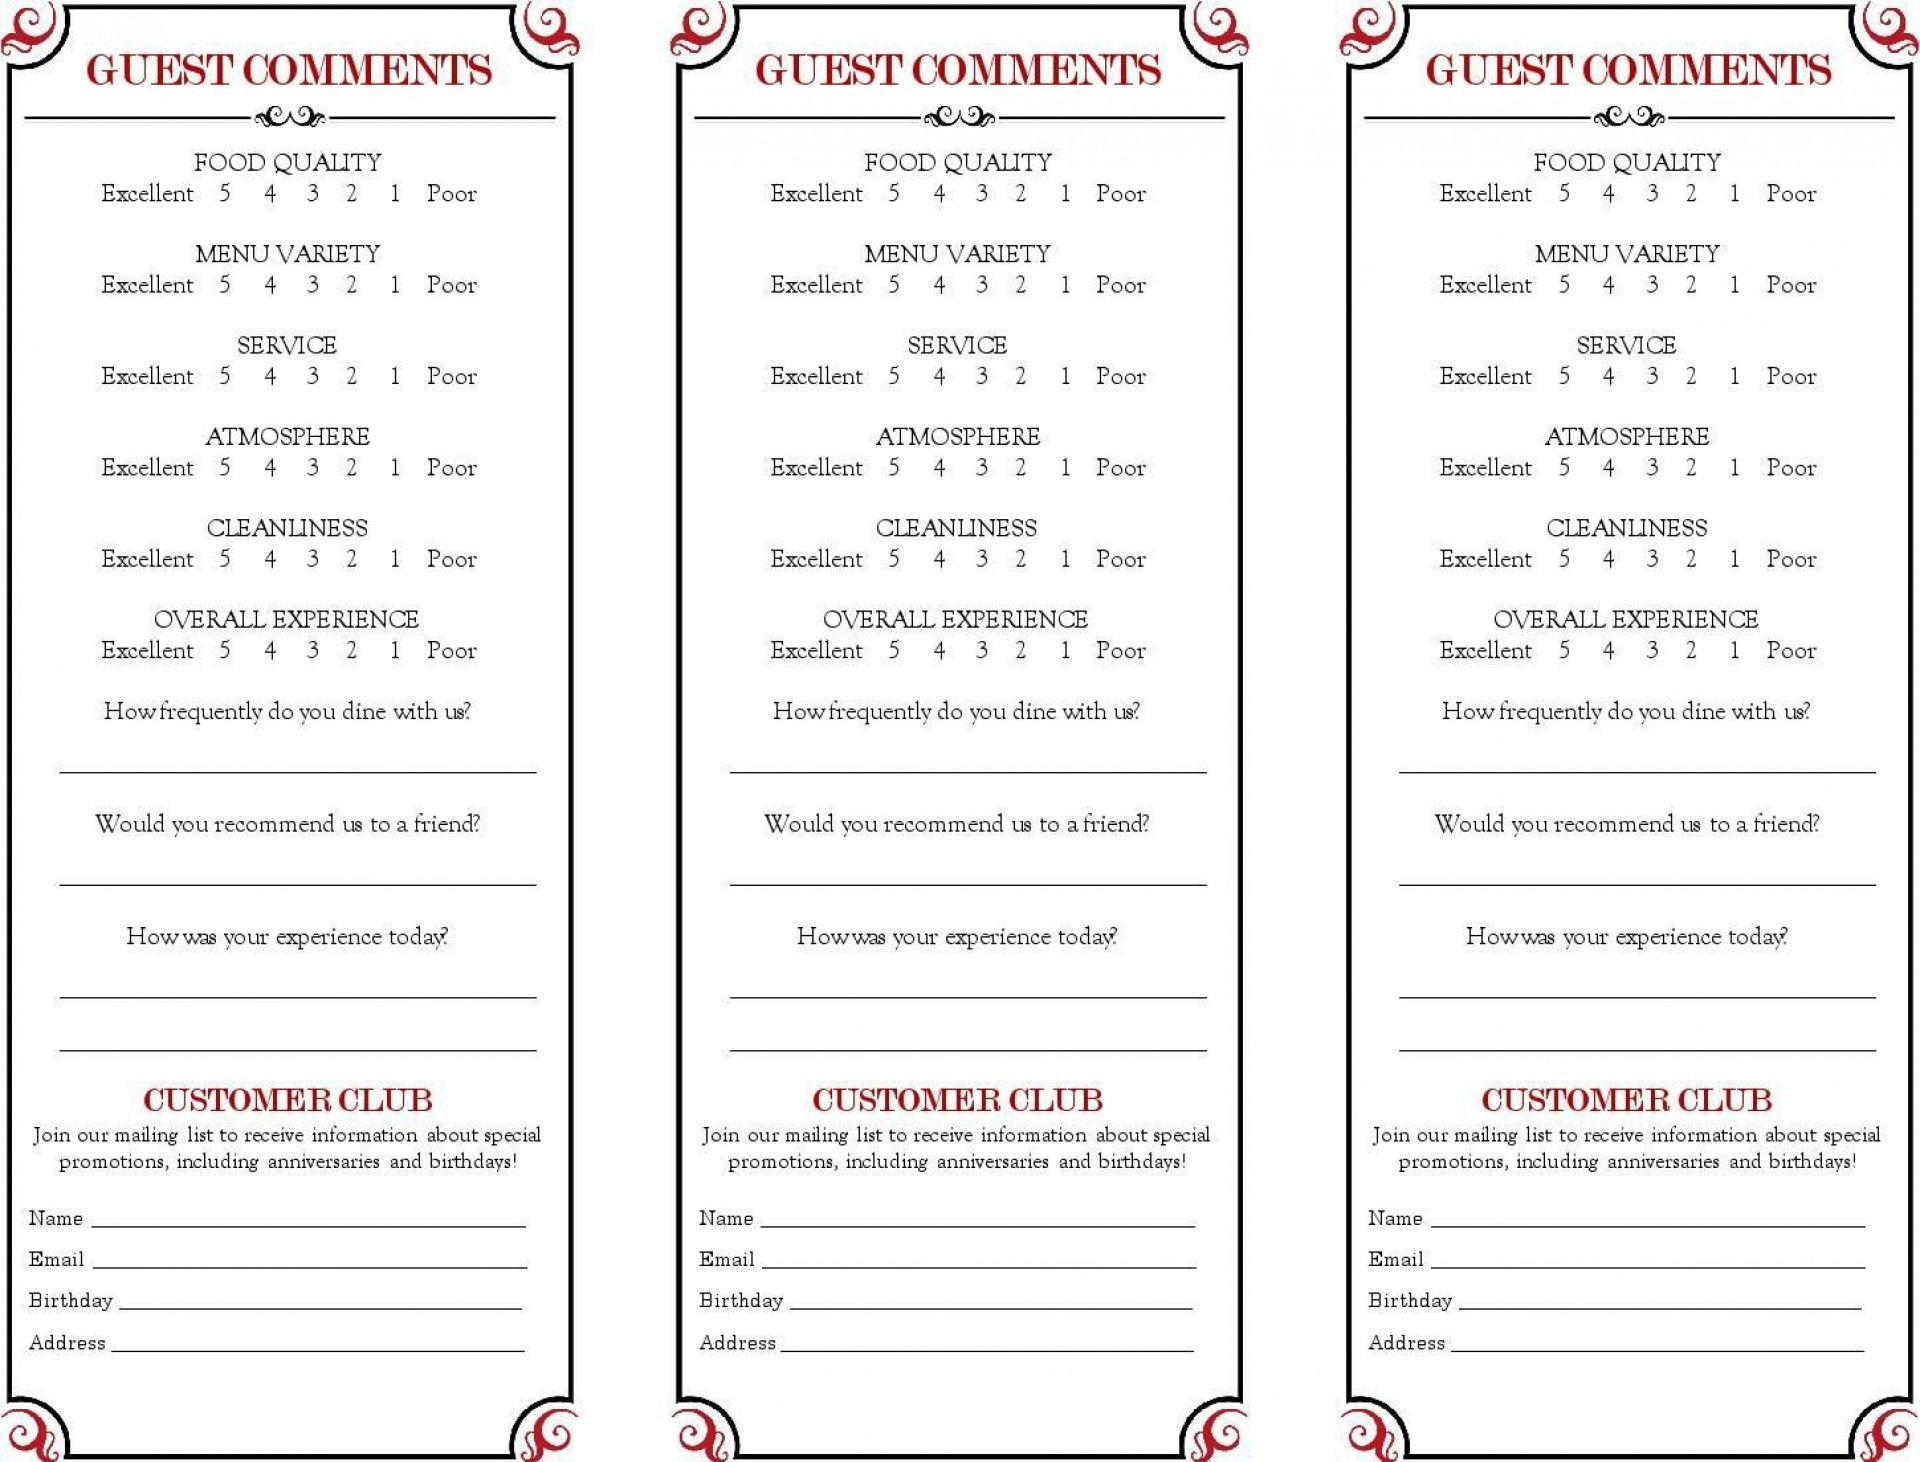 008 Fearsome Restaurant Comment Card Template For Word High Definition 1920